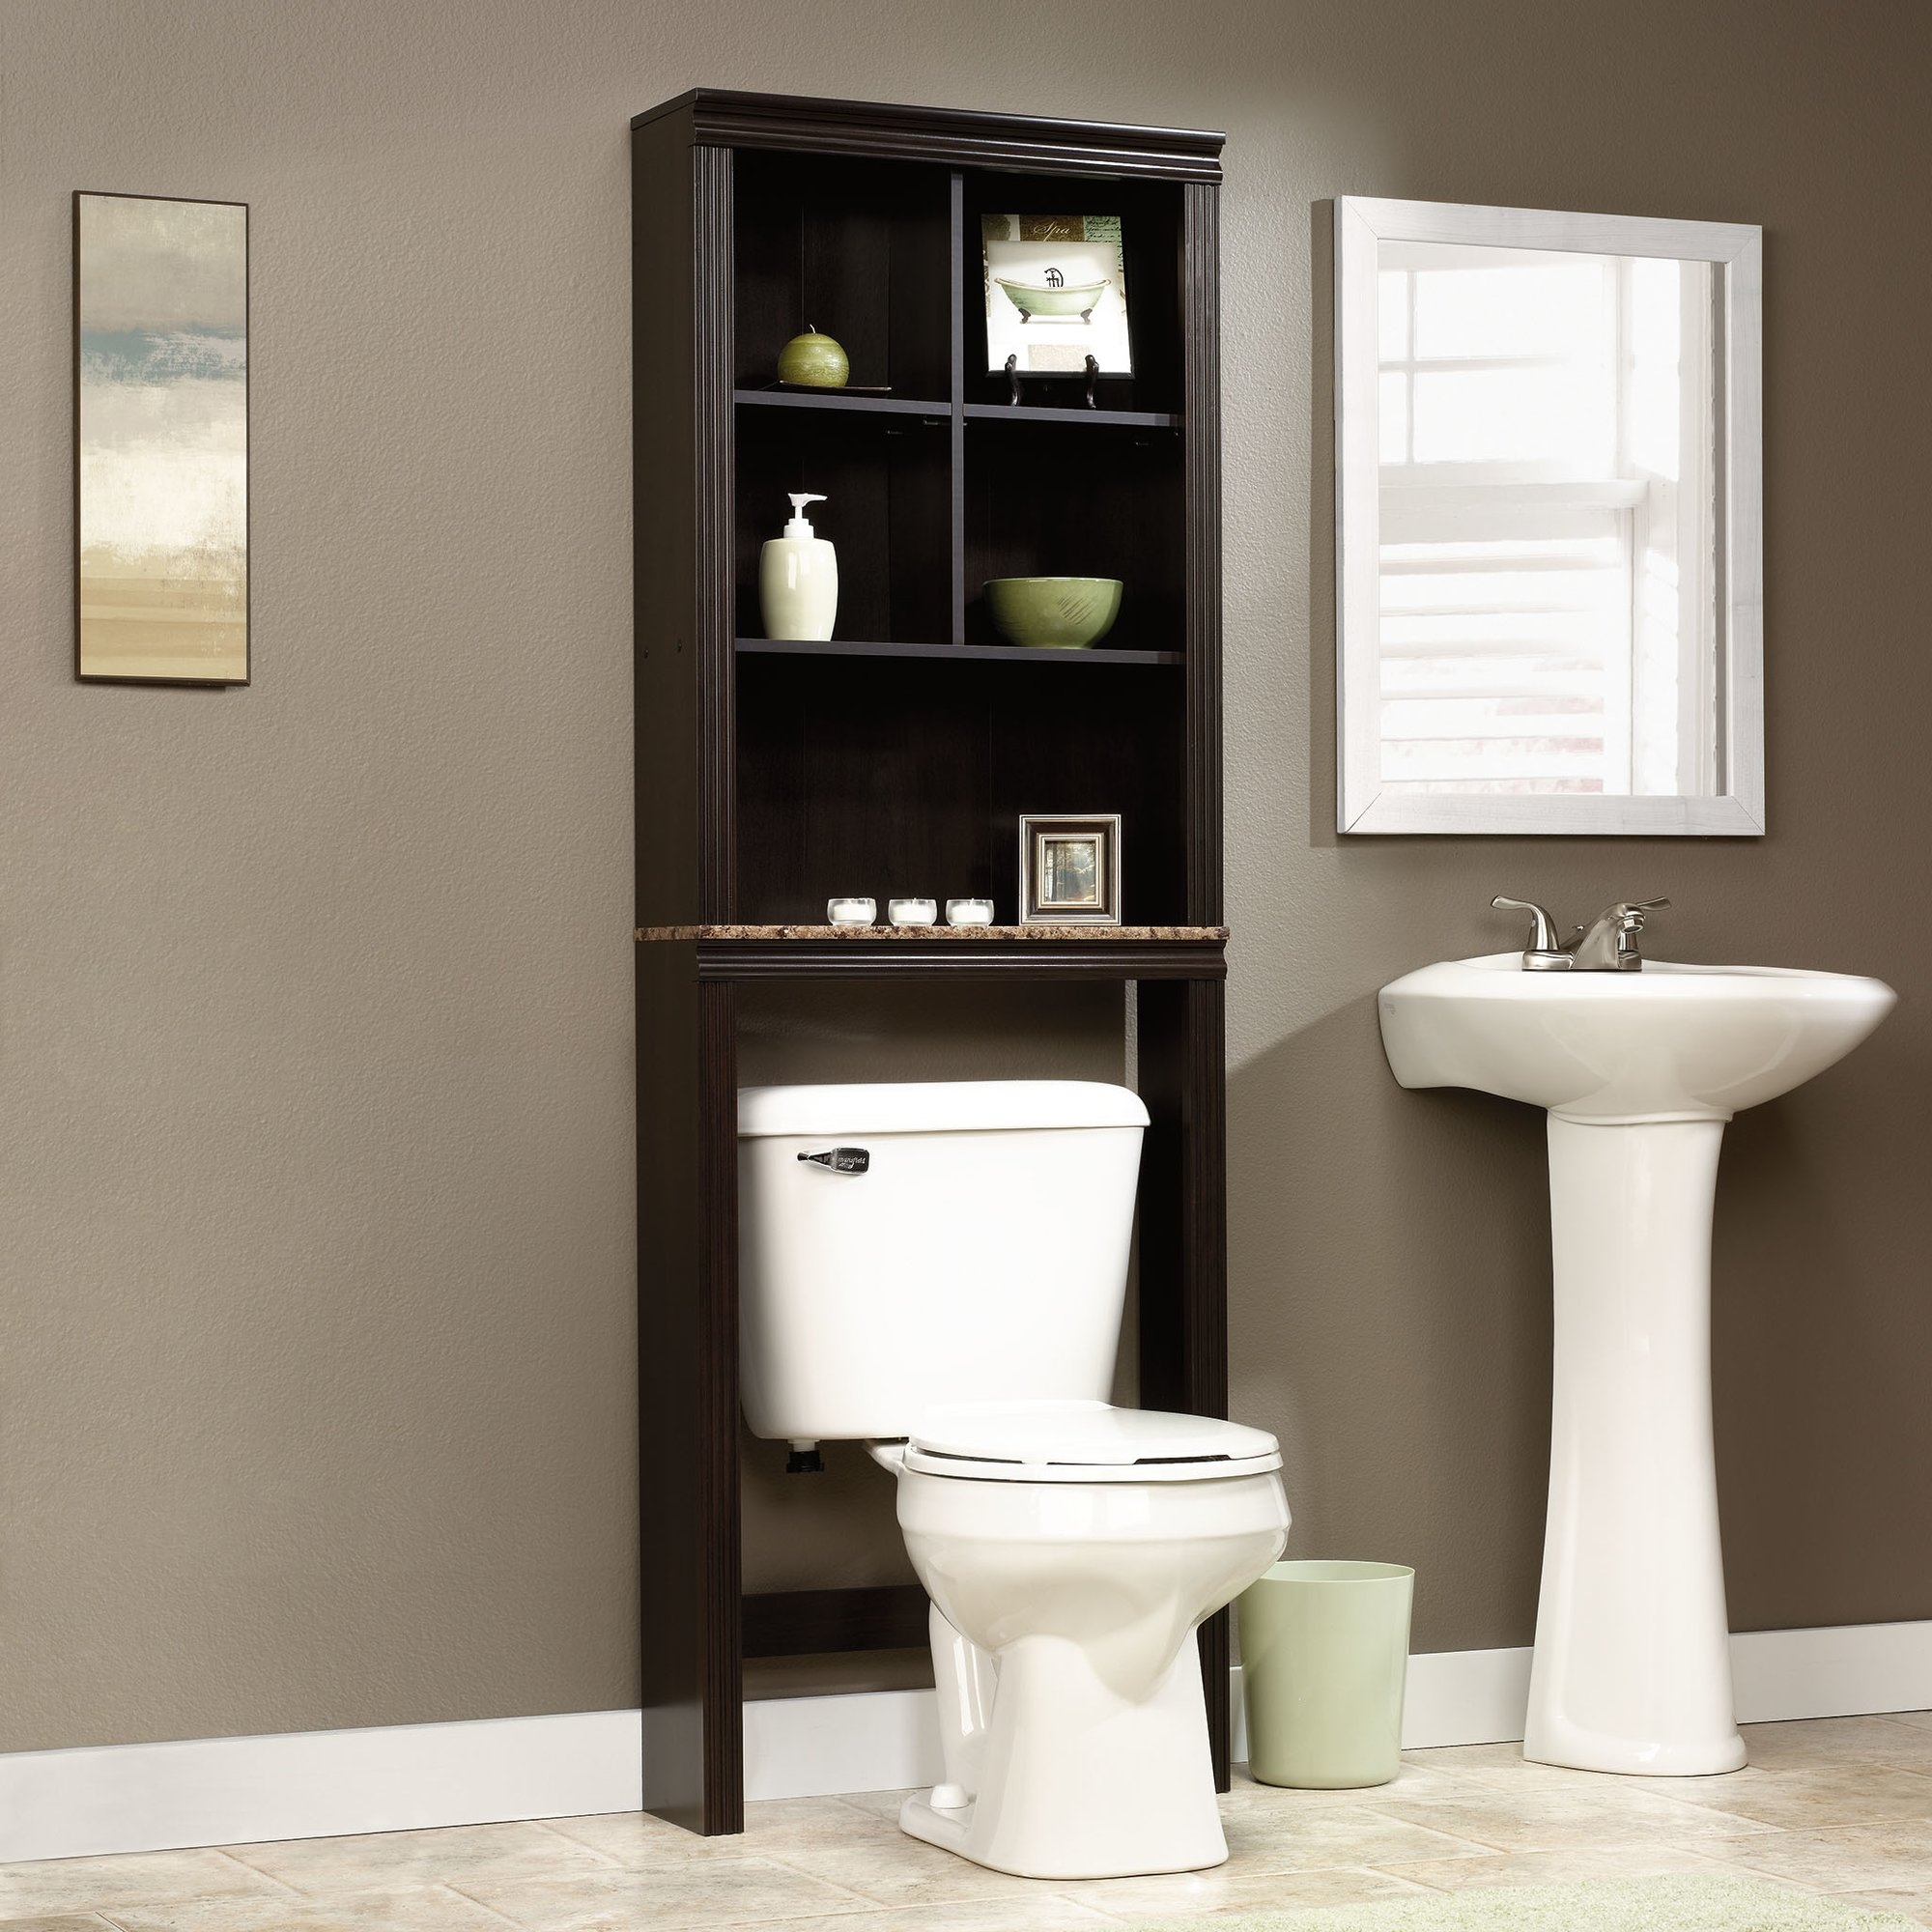 Permalink to Bathroom Cabinets Over The Toilet